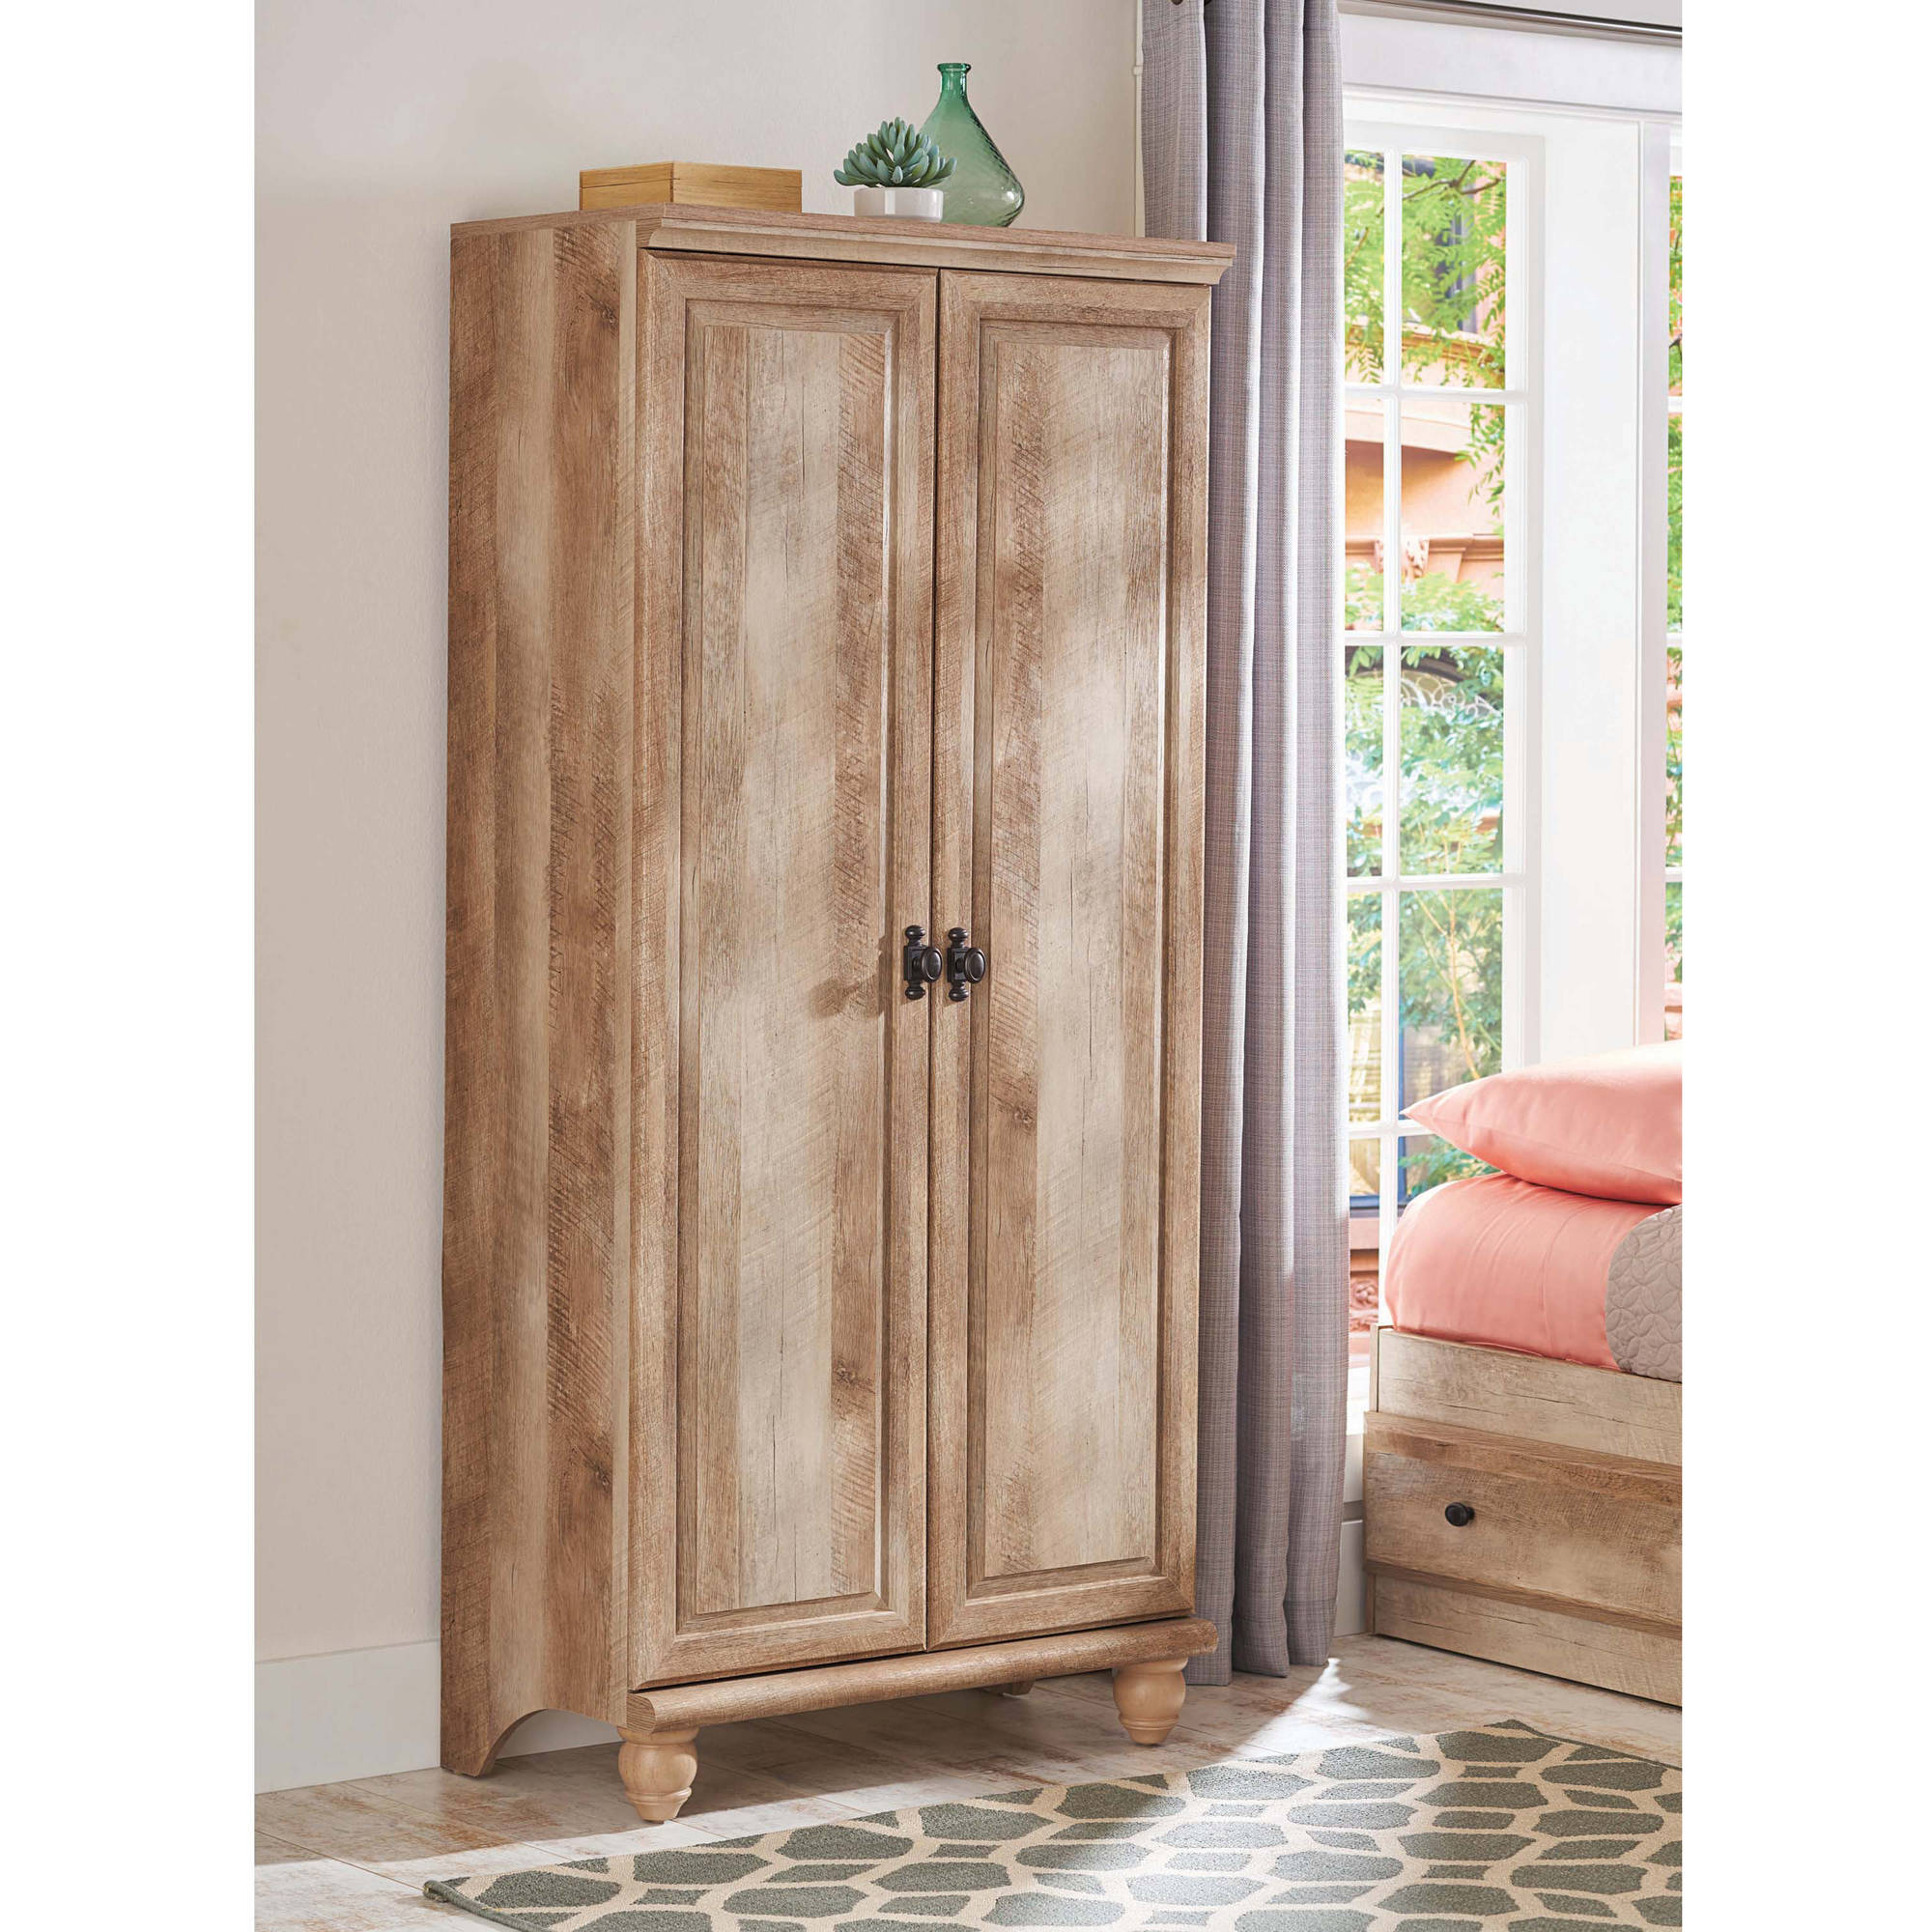 Better Homes and Gardens Crossmill Storage Cabinet, Weathered Finish